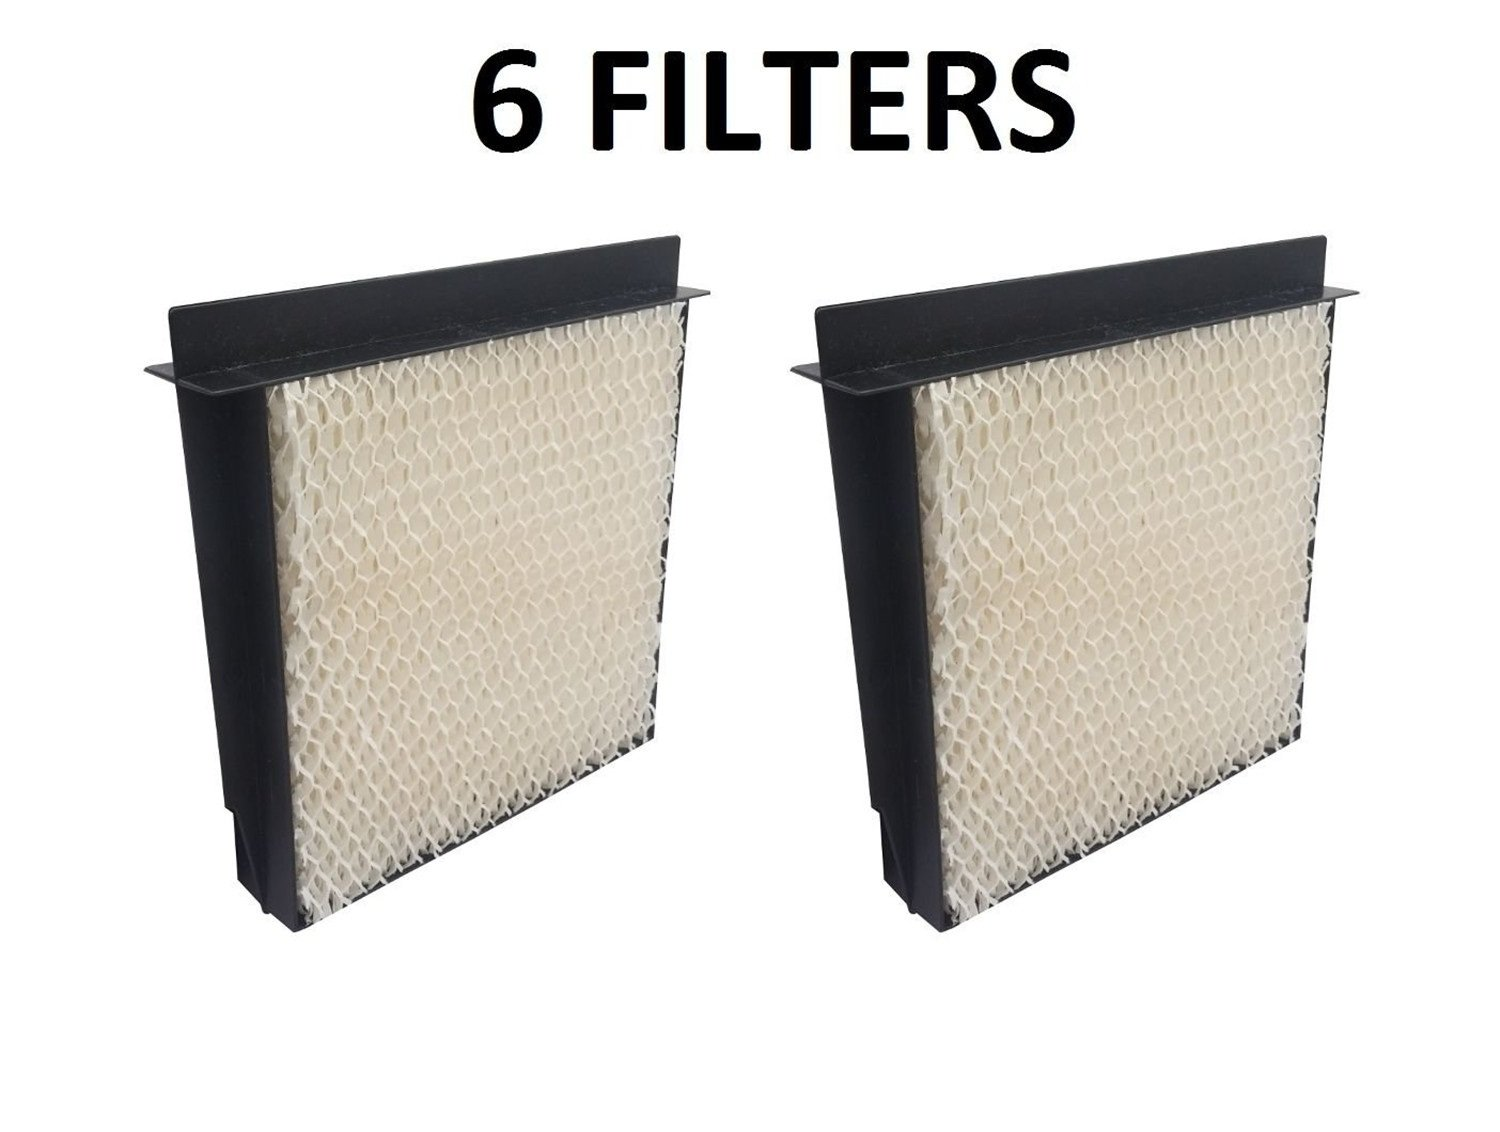 6 Pack, 1040 Humidifier Wick Filter For Bemis Aircare Essick Air B40, B40-C, Products Models D46-720, 5D6-700, 5D6700, 7000, B23, E35, and E35 000, CM330 Series.